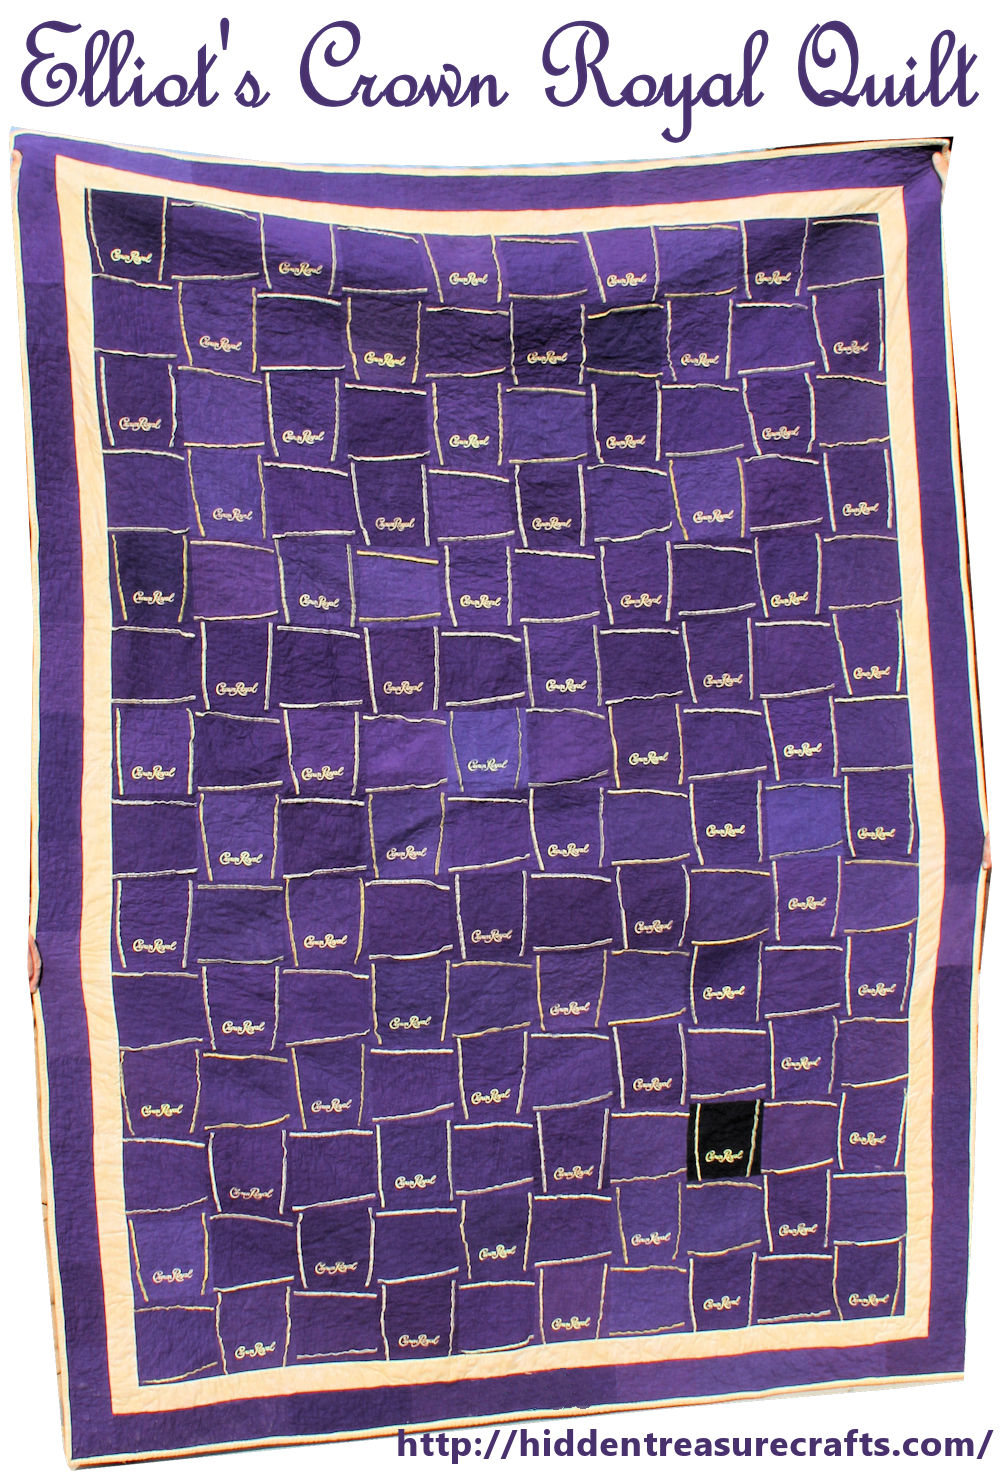 Elliot's Crown Royal Quilt | Hidden Treasure Crafts and Quilting : crown royal quilt pictures - Adamdwight.com